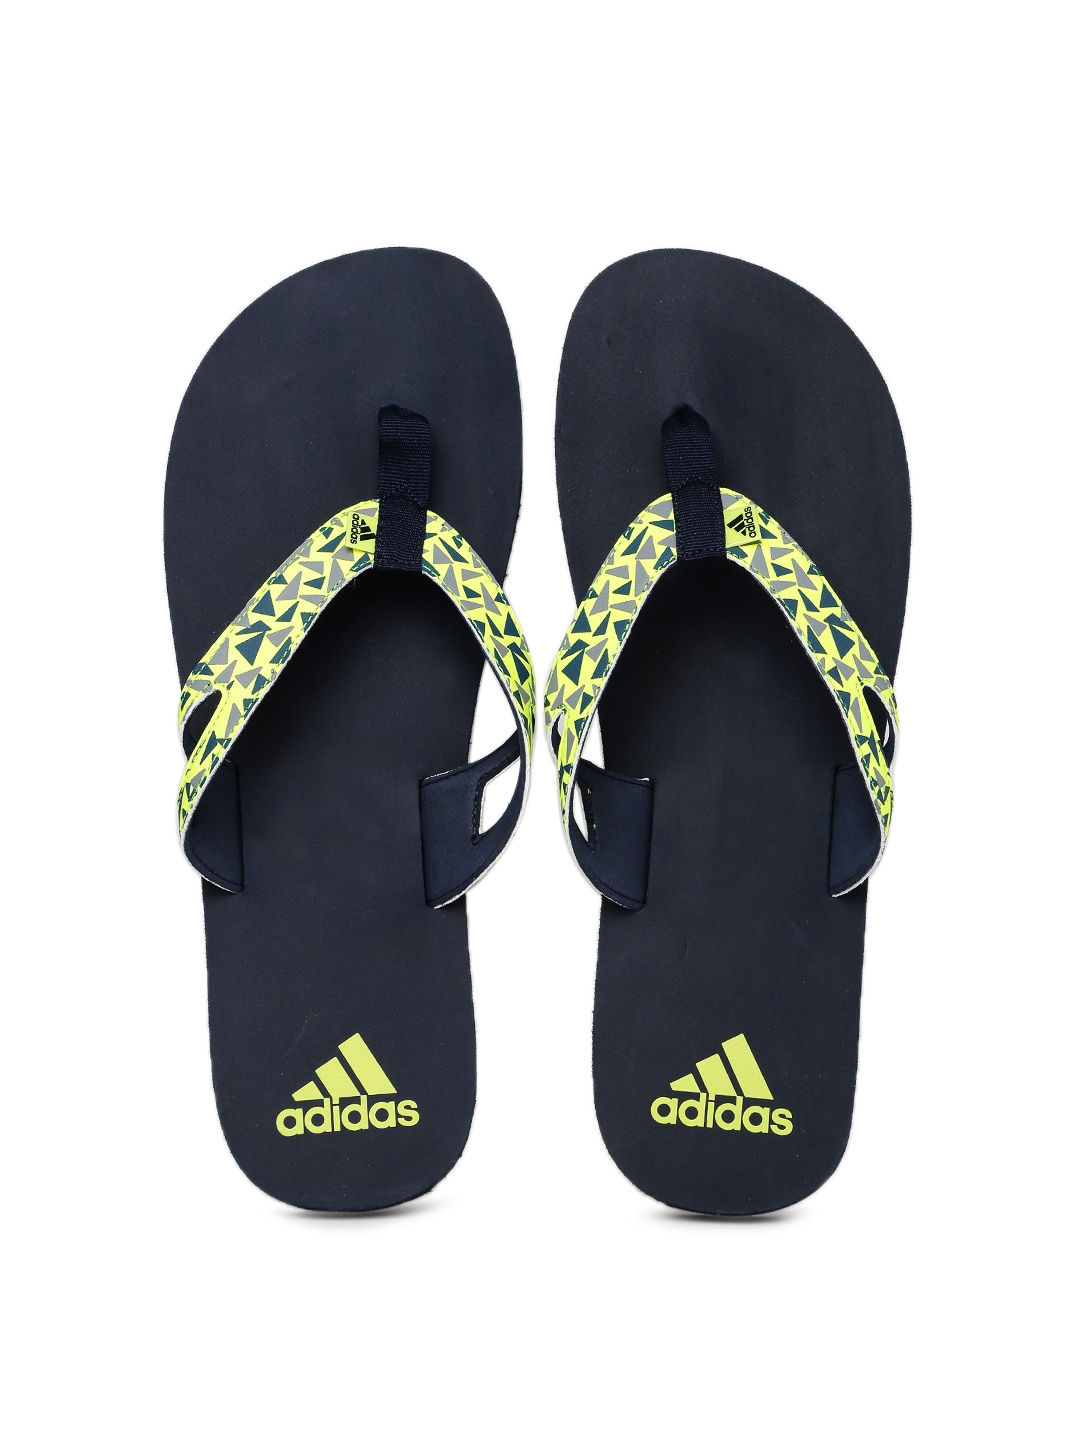 d65b4aa281e6d Adidas ba5717 Men Fluorescent Green And Navy Printed Ozor Flip Flops- Price  in India